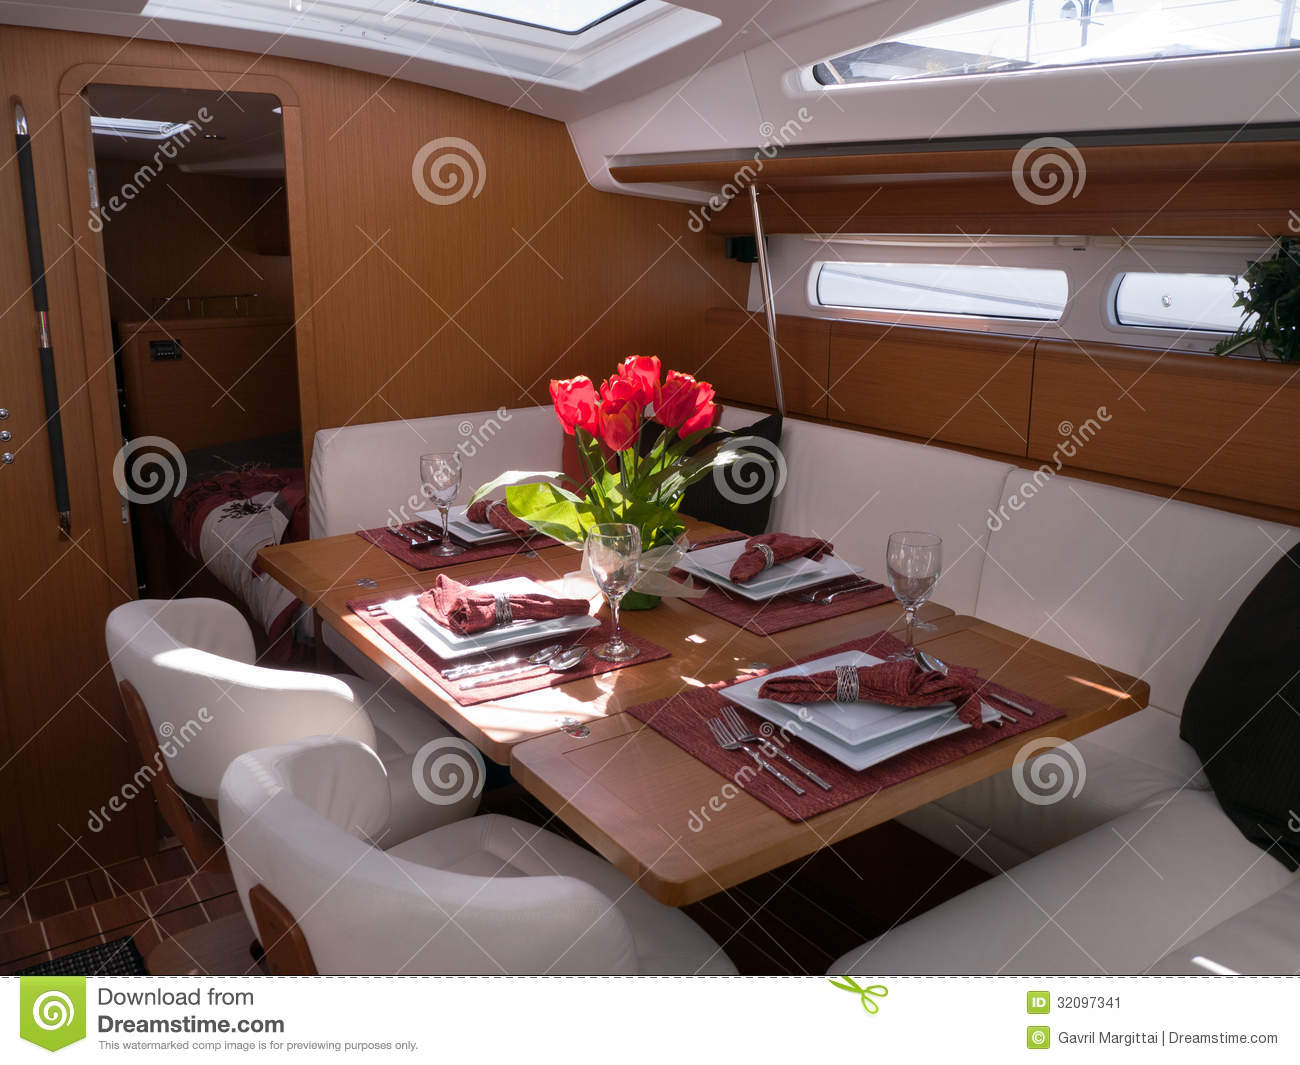 Modern Yacht Interior Stock Image Image 32097341 : modern yacht interior mahogany furniture finish dining room 32097341 from www.dreamstime.com size 1300 x 1065 jpeg 153kB